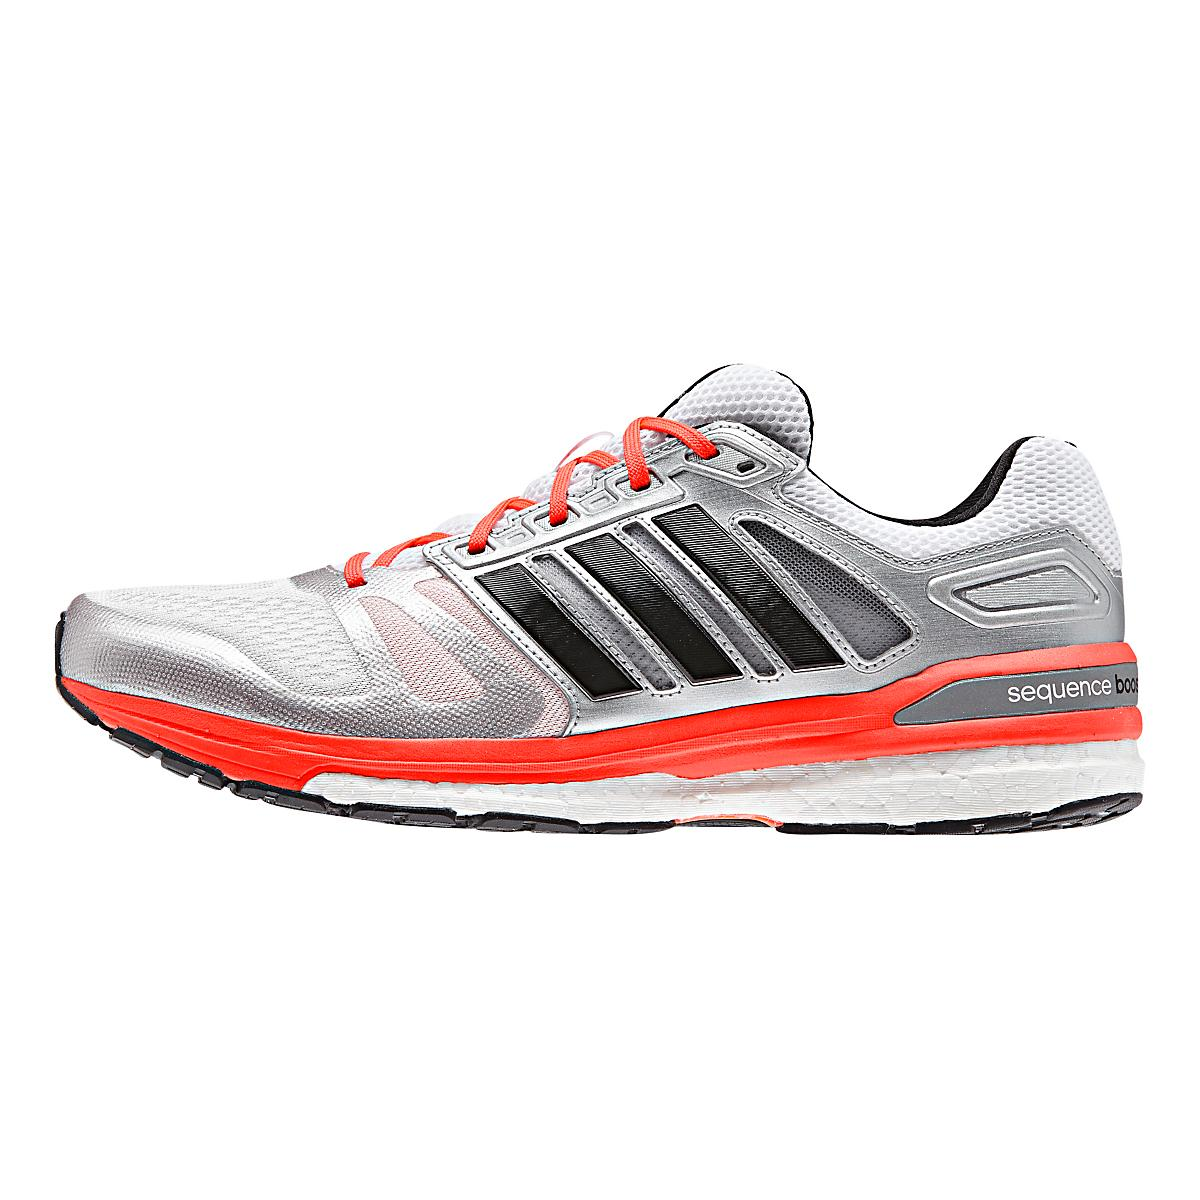 mens adidas supernova sequence 7 boost running shoe at. Black Bedroom Furniture Sets. Home Design Ideas